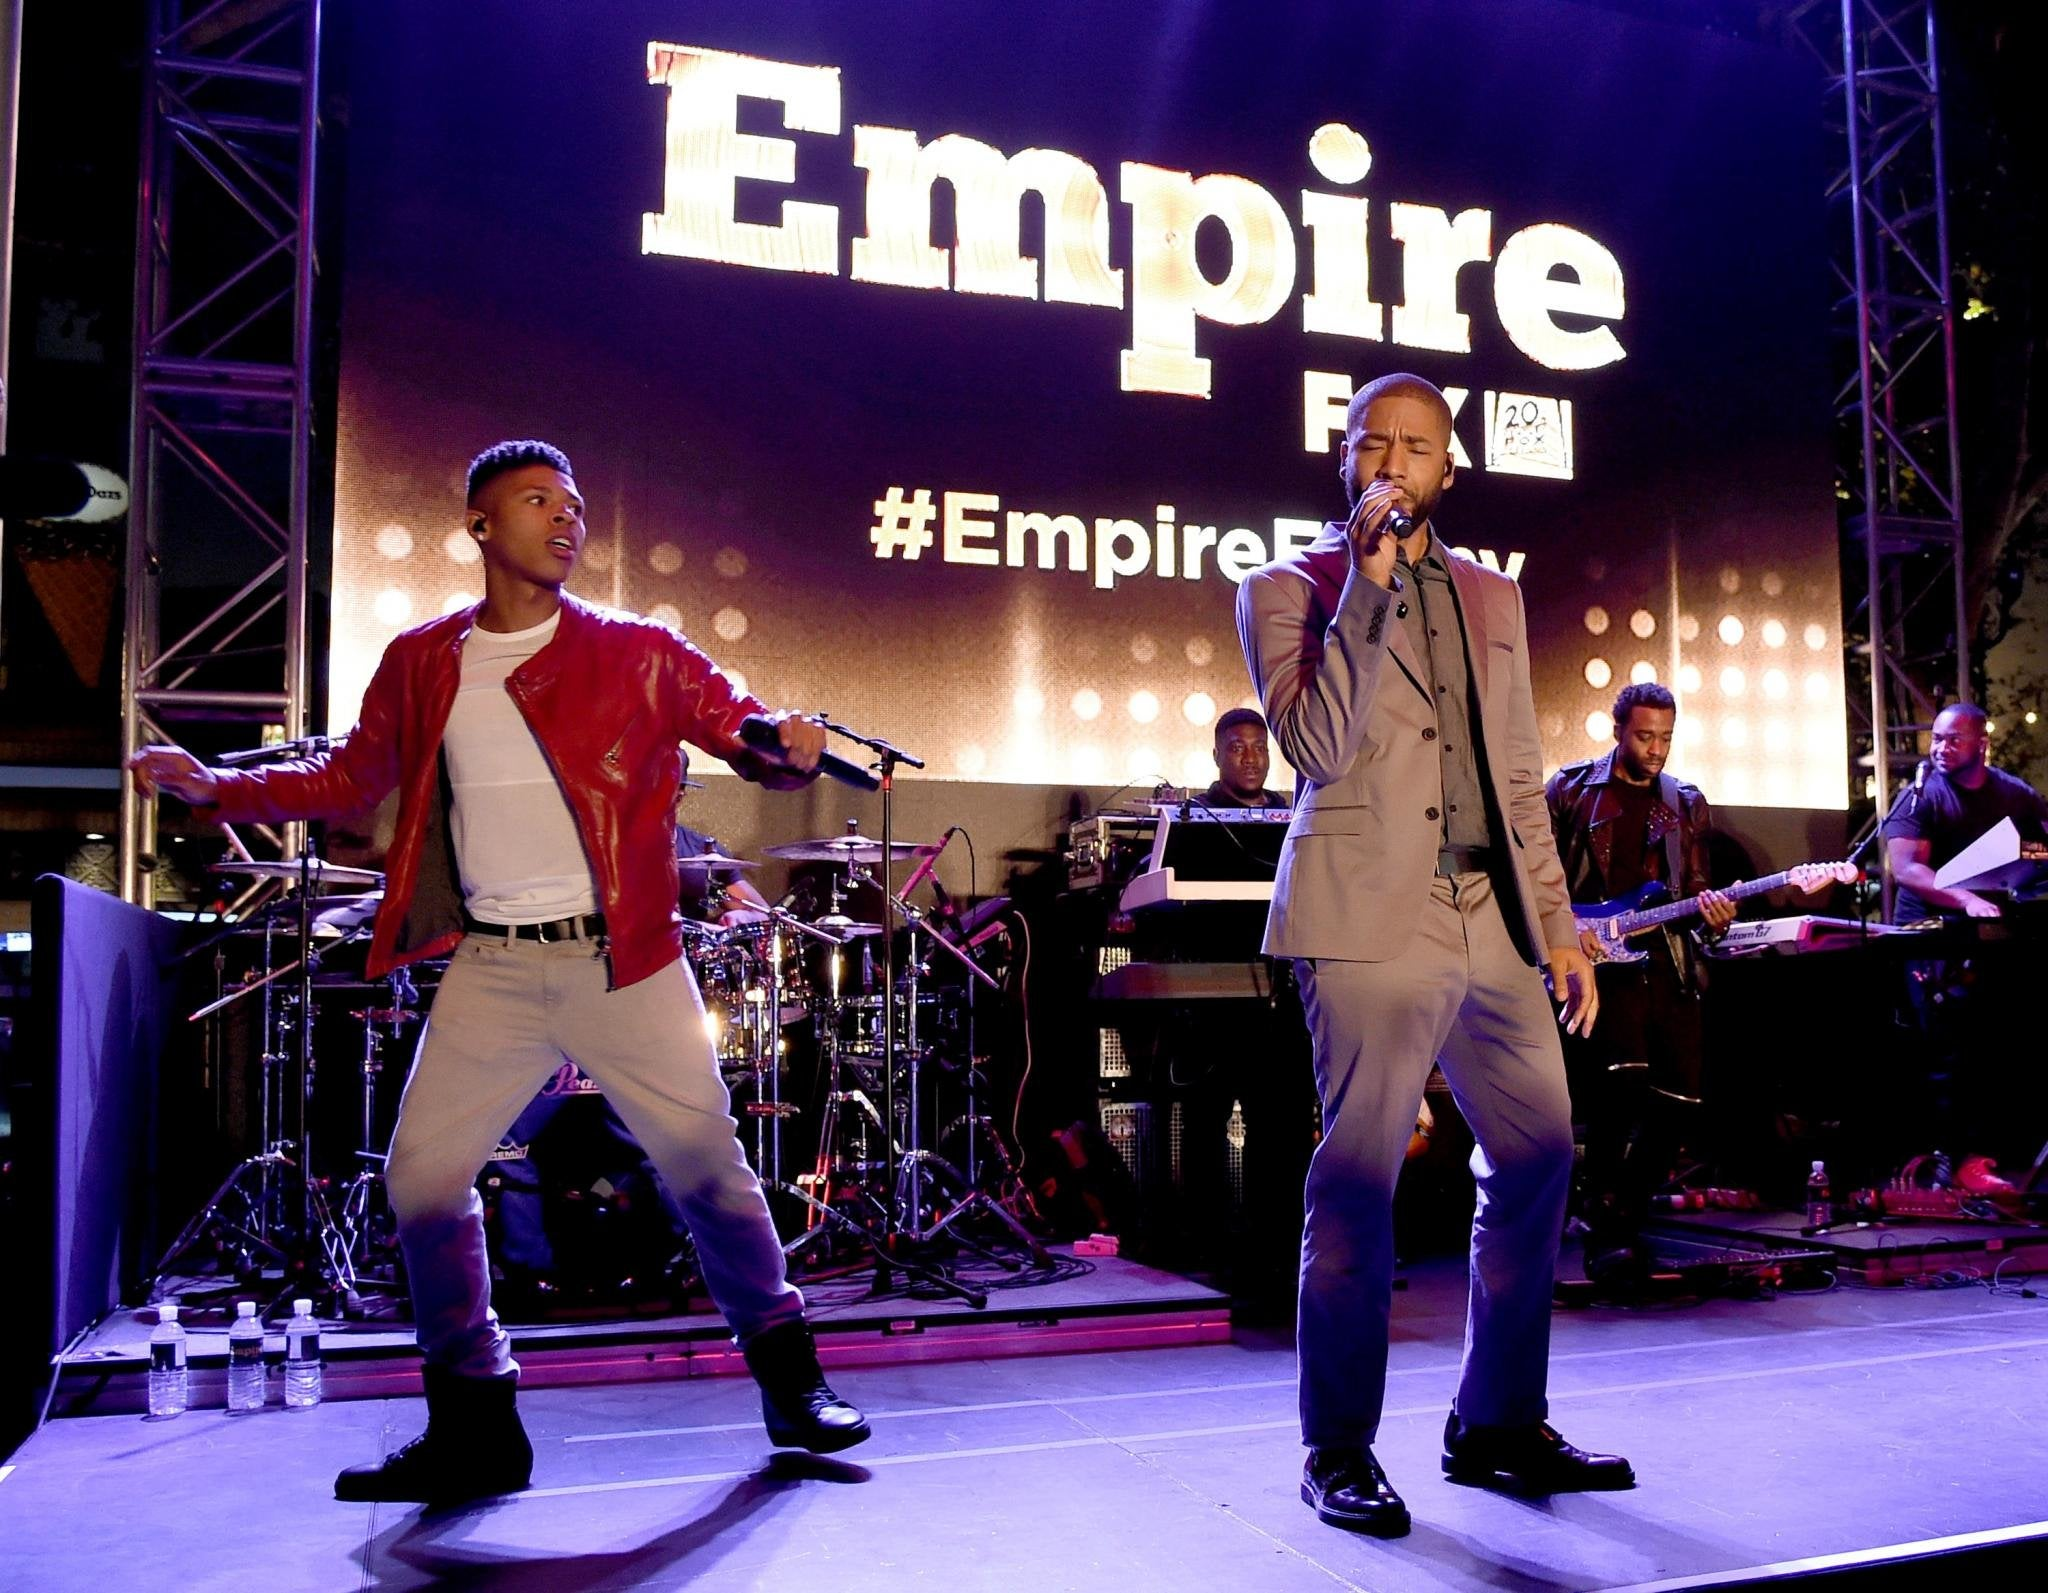 EXCLUSIVE: Watch An Extended Version of 'No Apologies' Music Video from 'Empire'